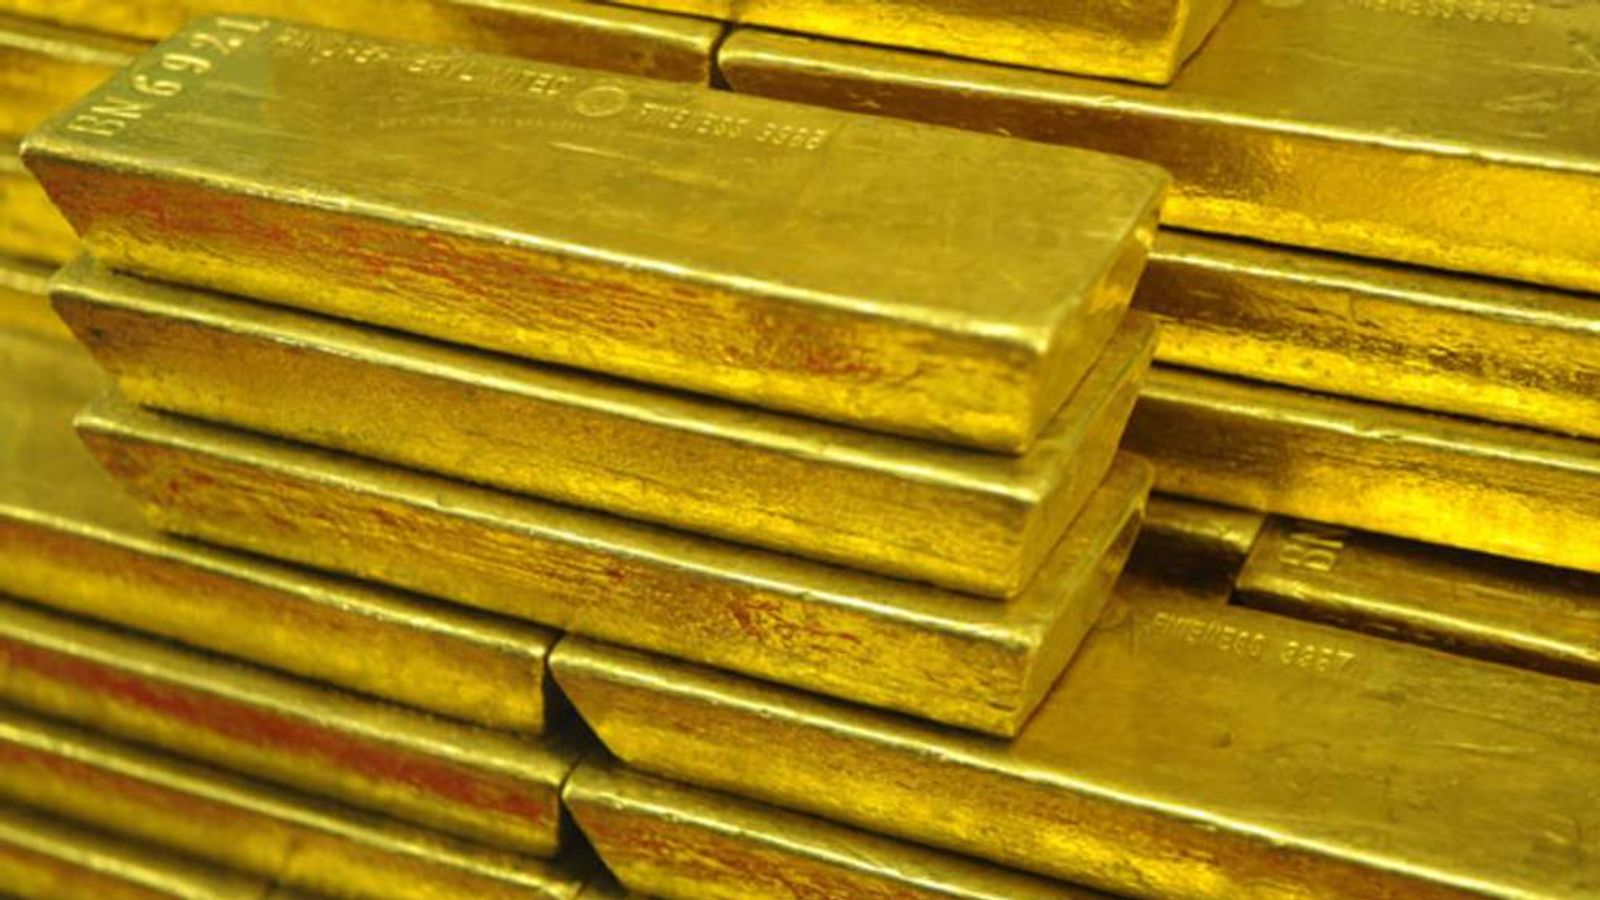 Gold has long been a transferrable commodity